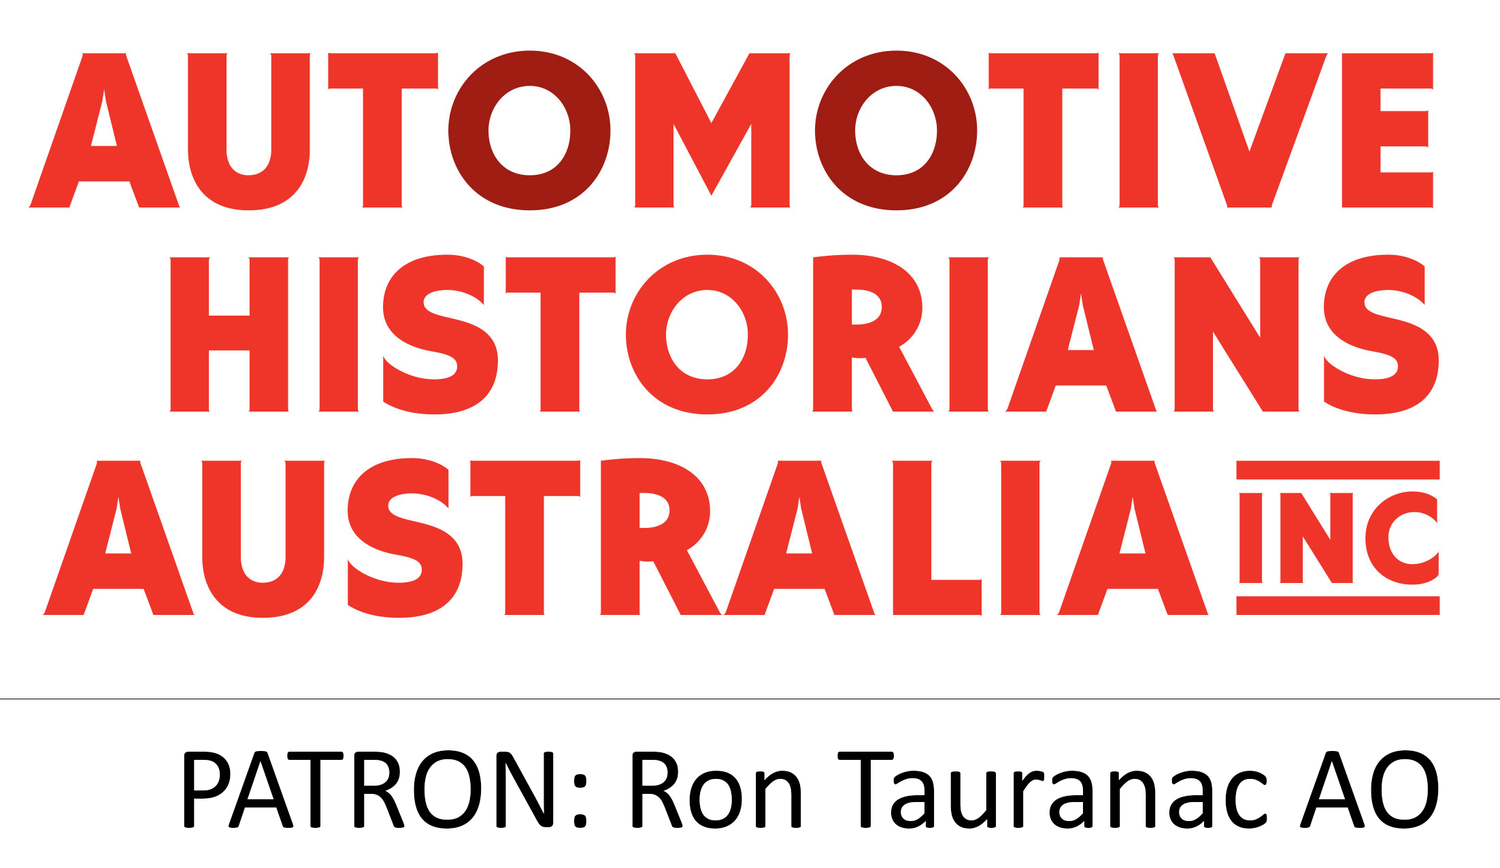 Automotive Historians Australia Inc